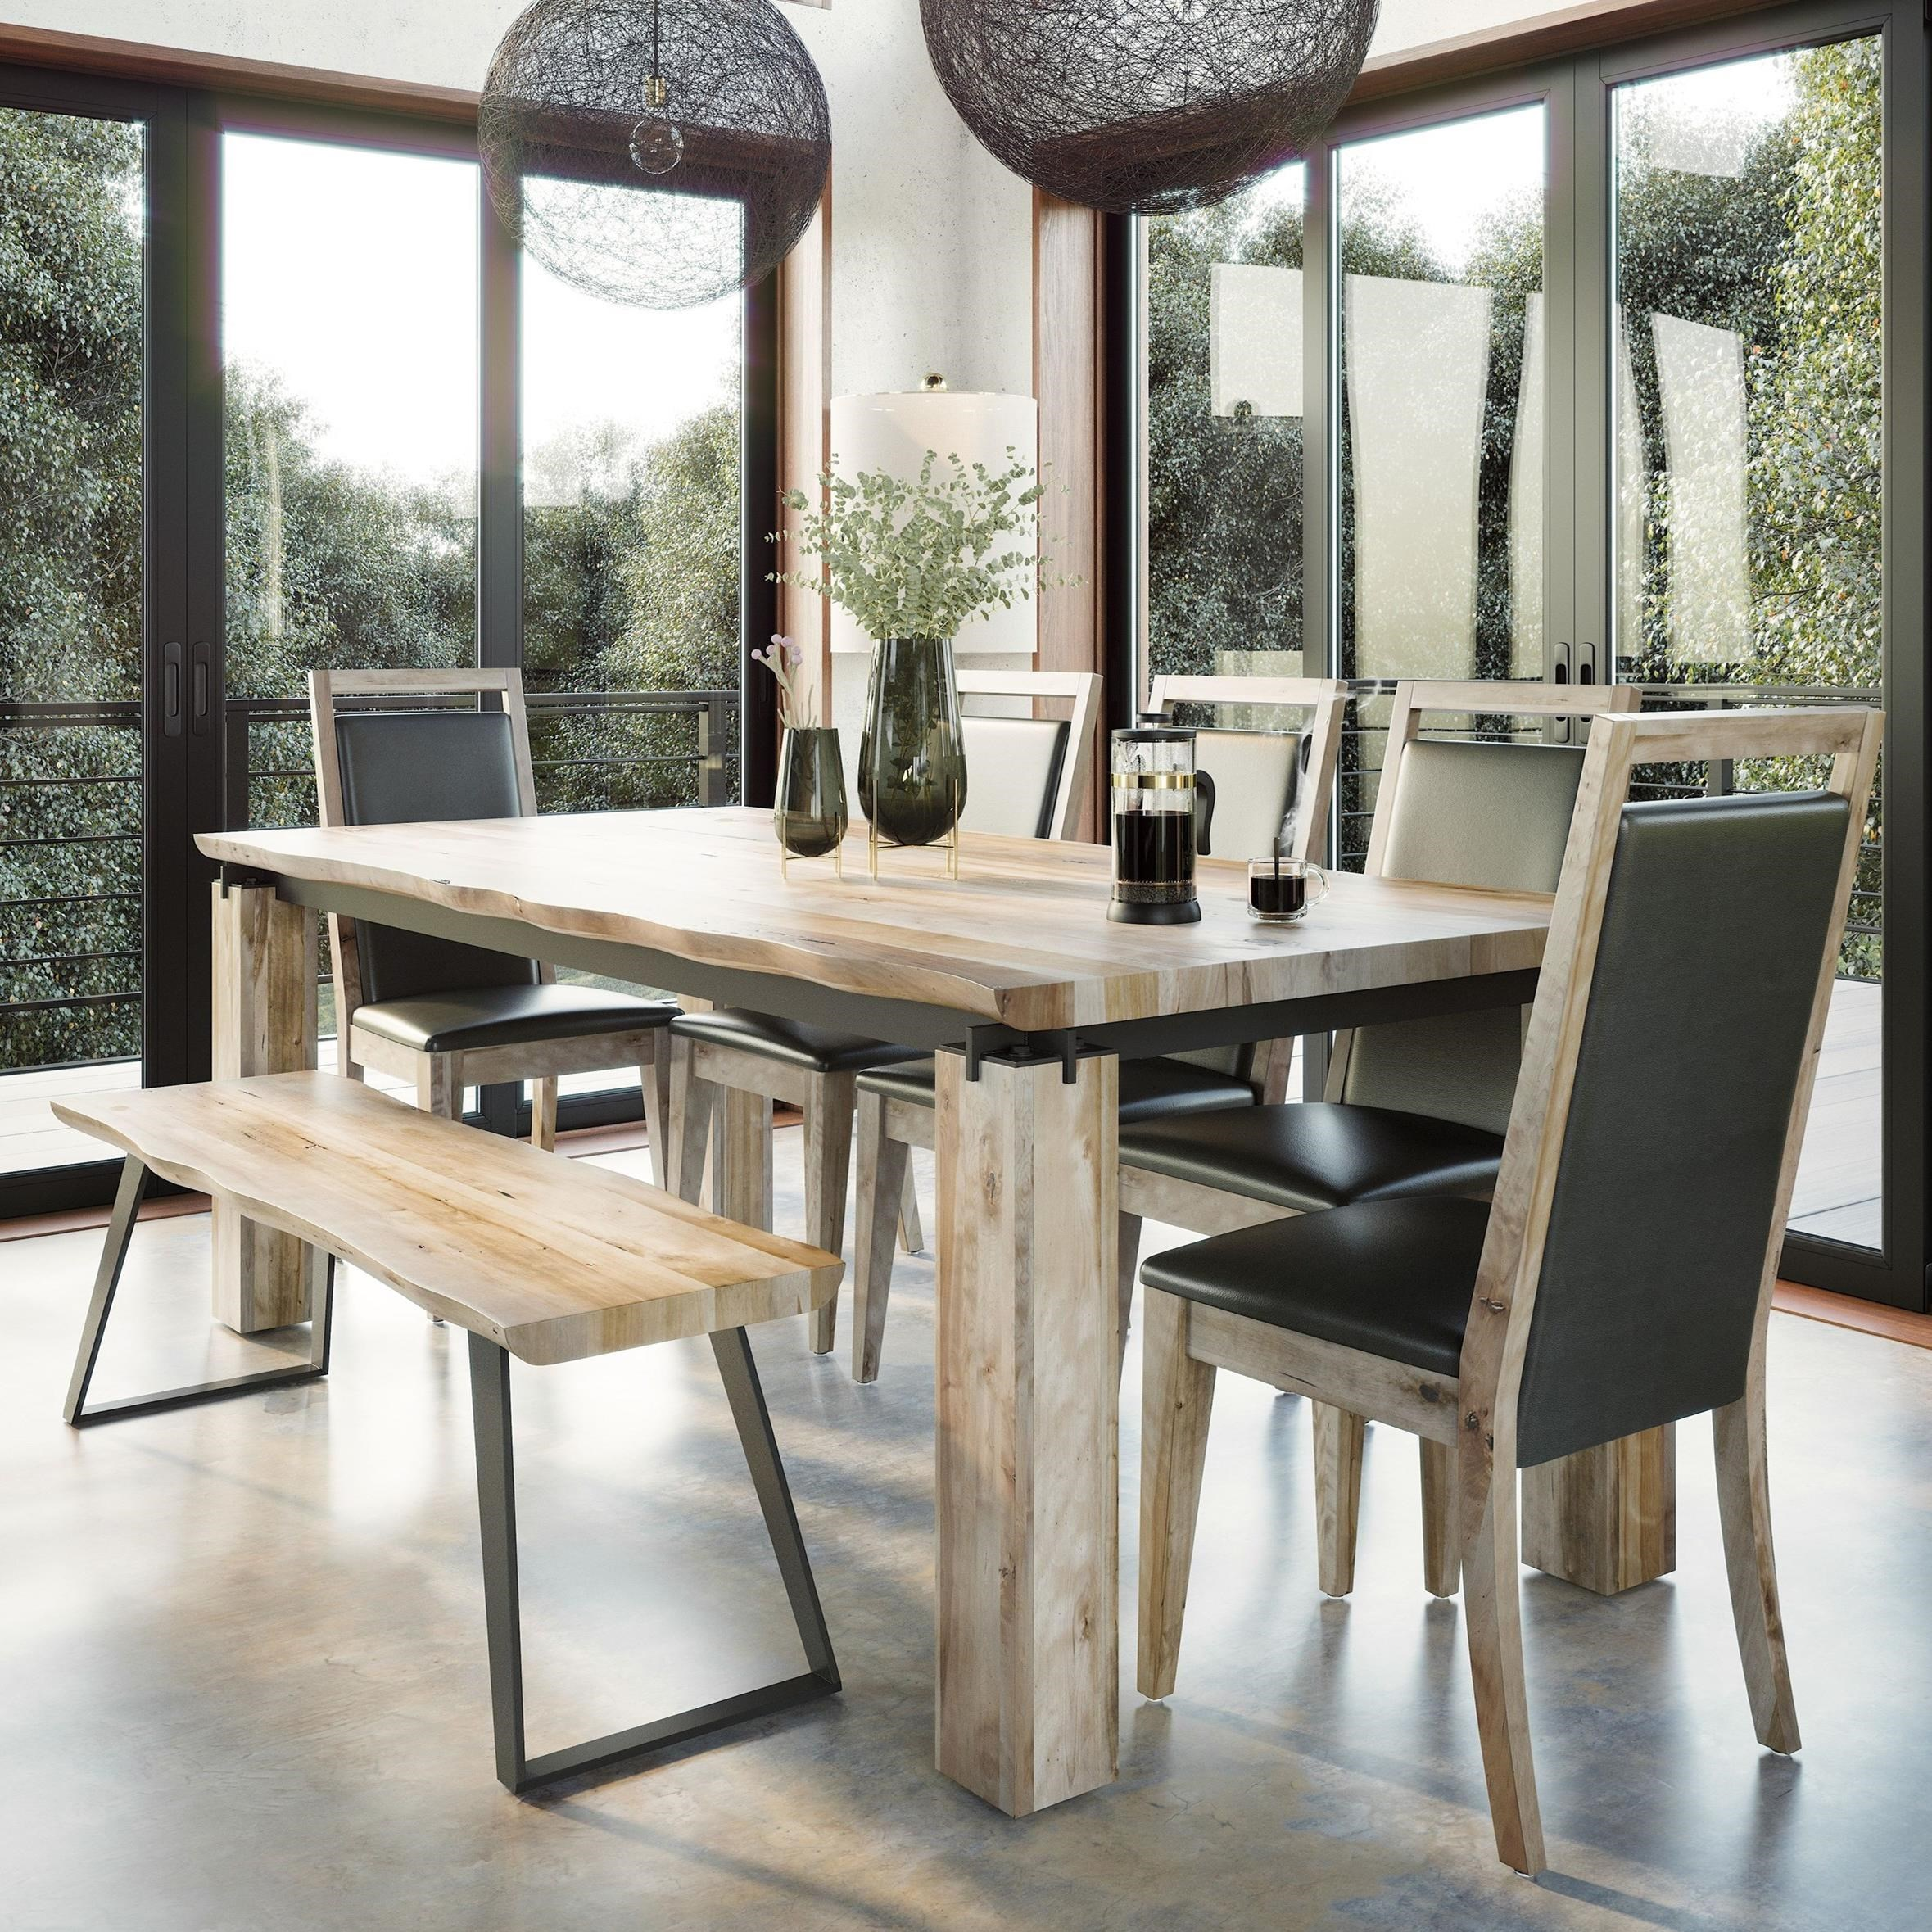 East Side Customizable Dining Table Set  by Canadel at Jordan's Home Furnishings